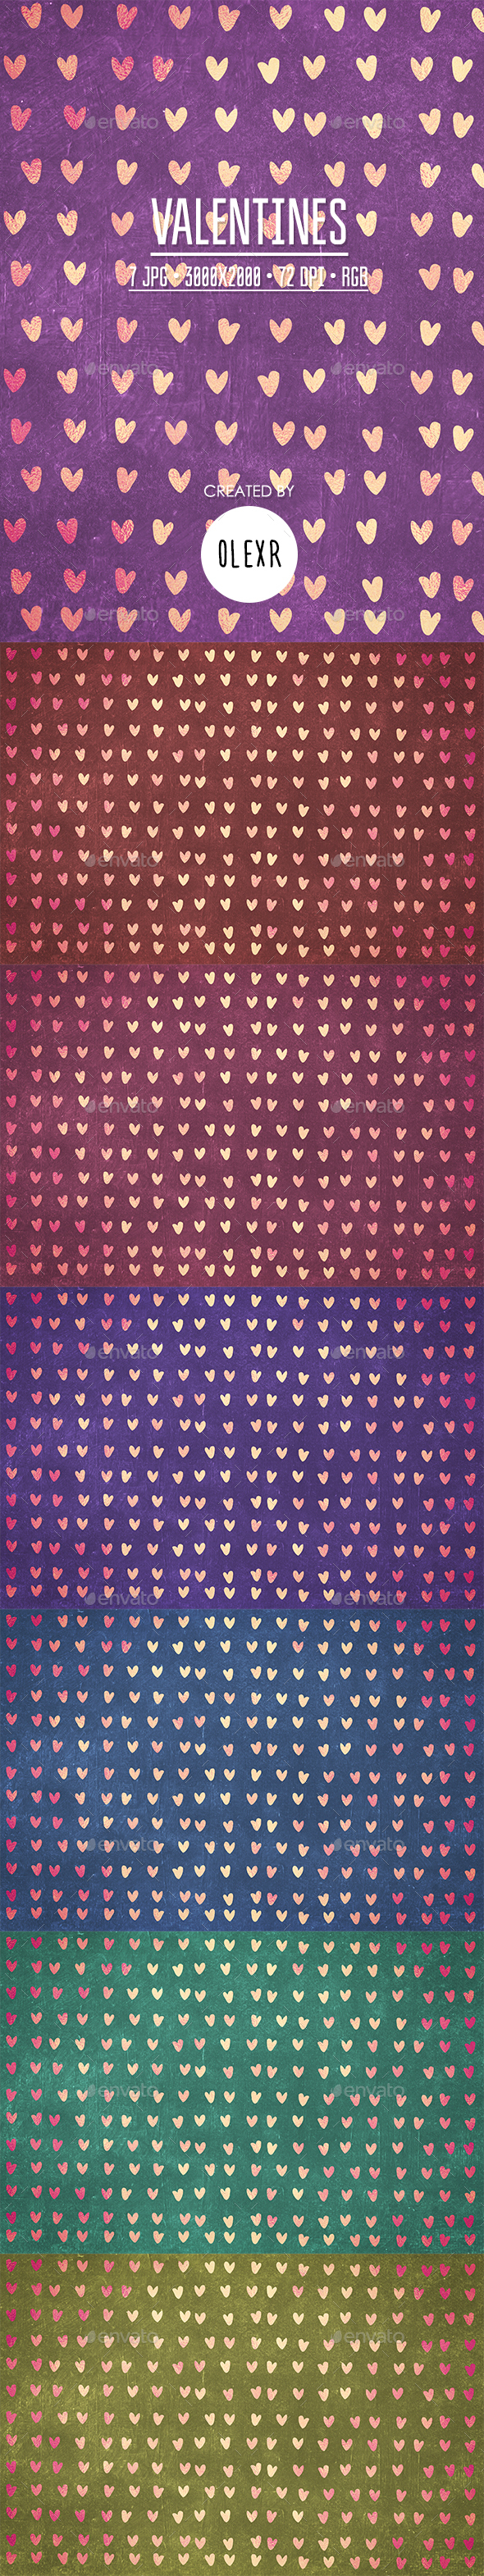 Valentines Backgrounds - Abstract Backgrounds